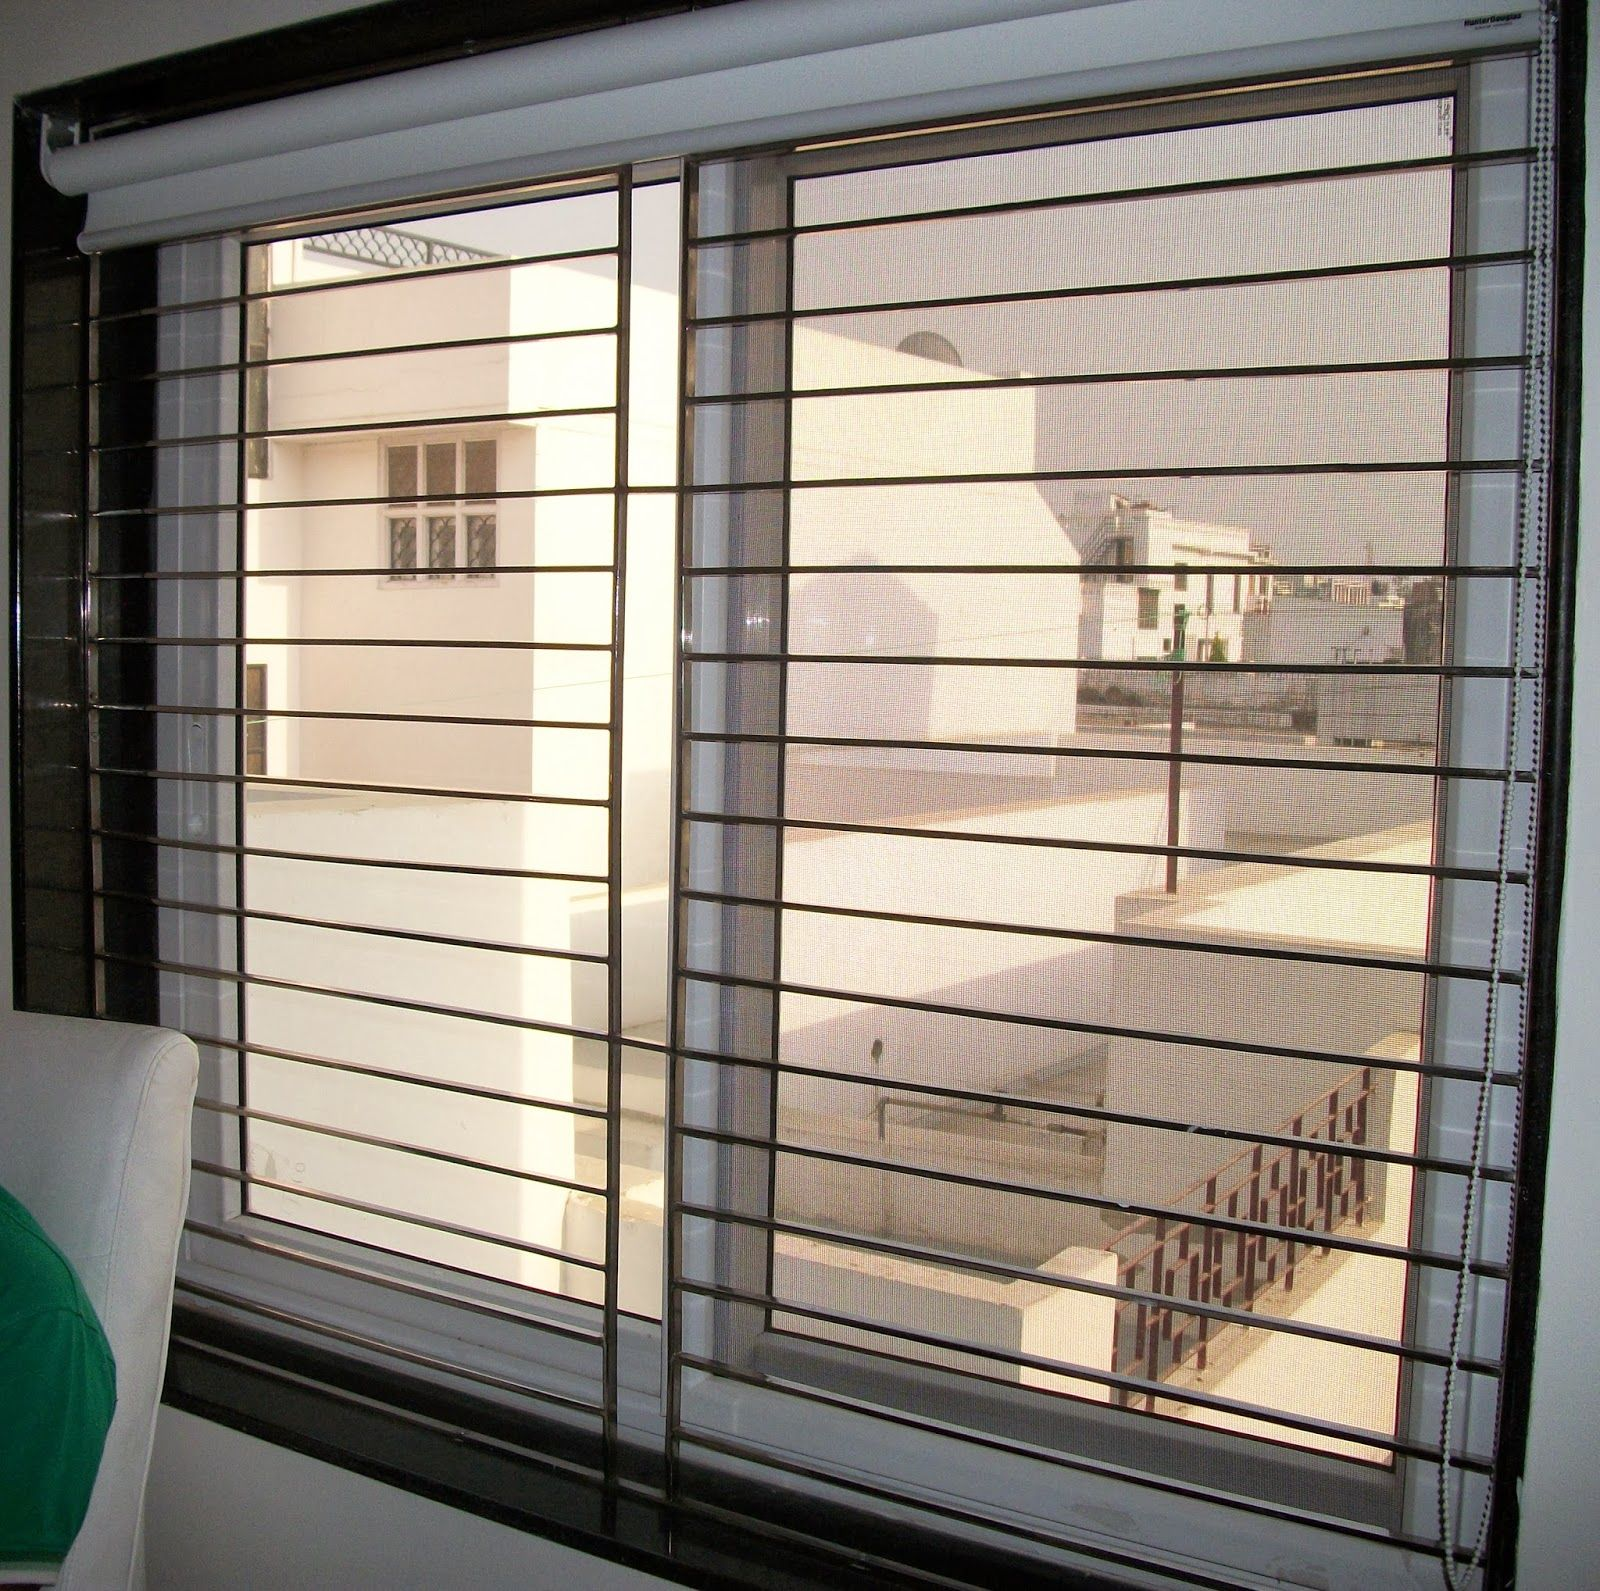 Protecciones Para Ventanas Awning Windows With Grilles Google Search Creating